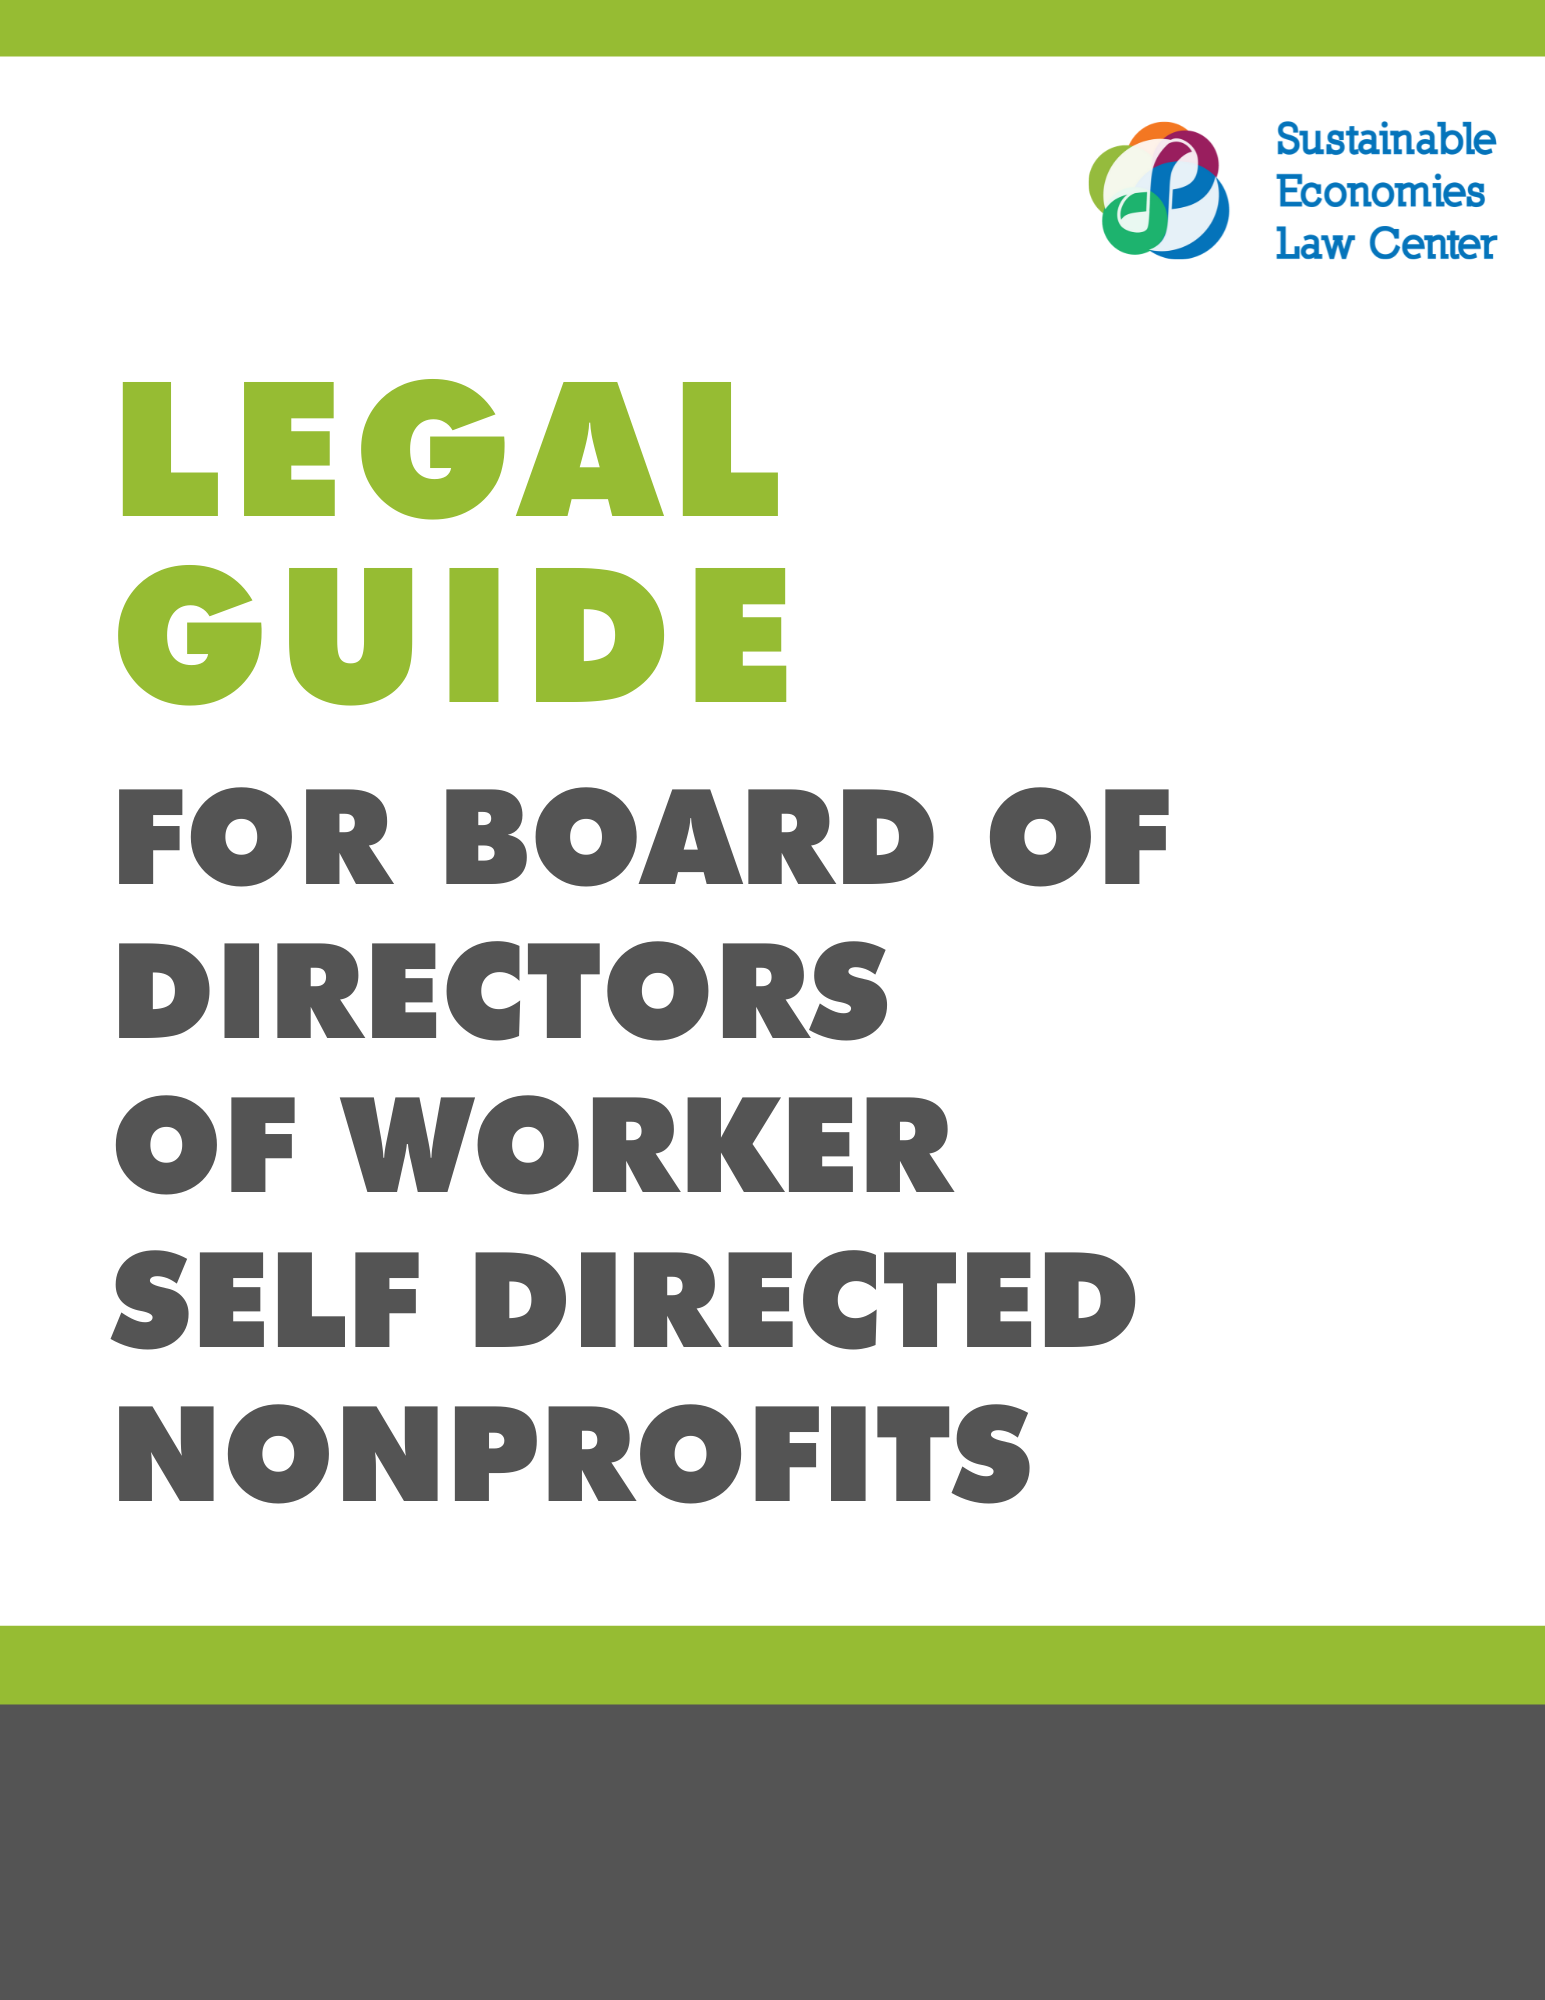 Legal Guide for Board of Directors